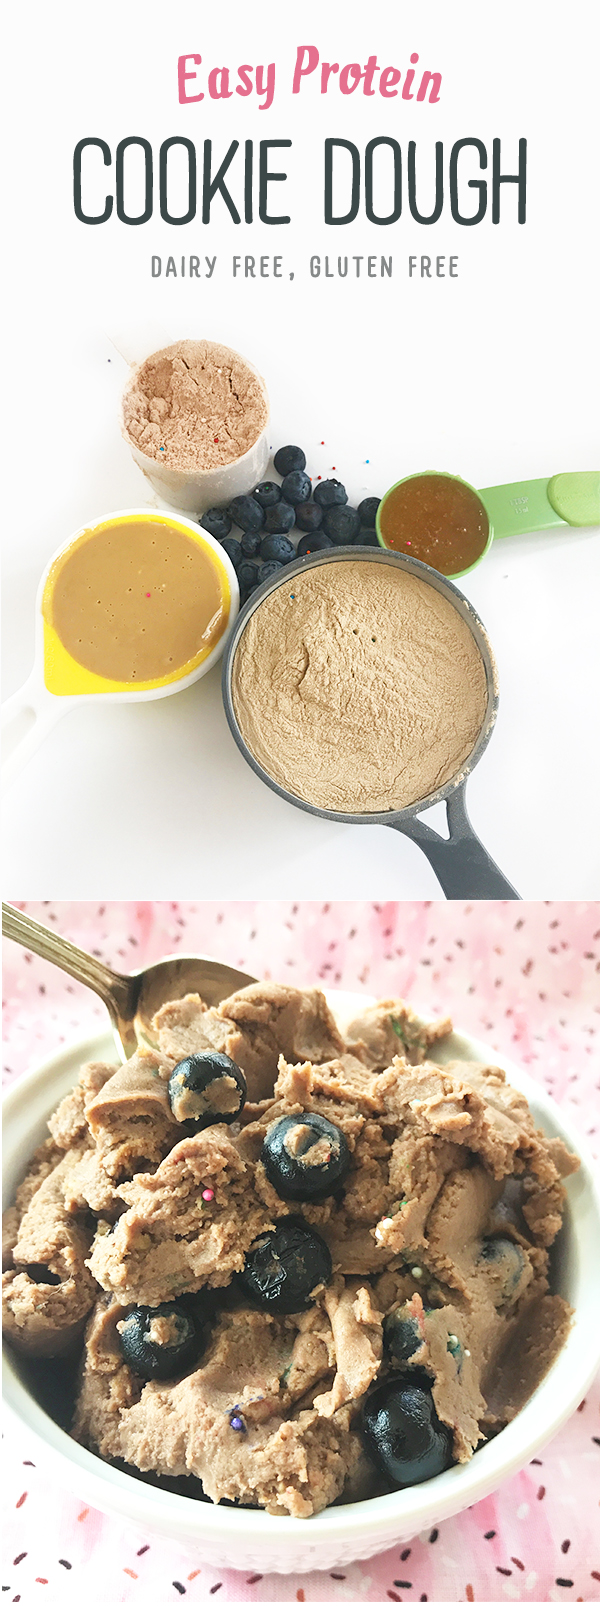 Healthy High Protein Cookie Dough - Dairy free, gluten free, plant based dessert